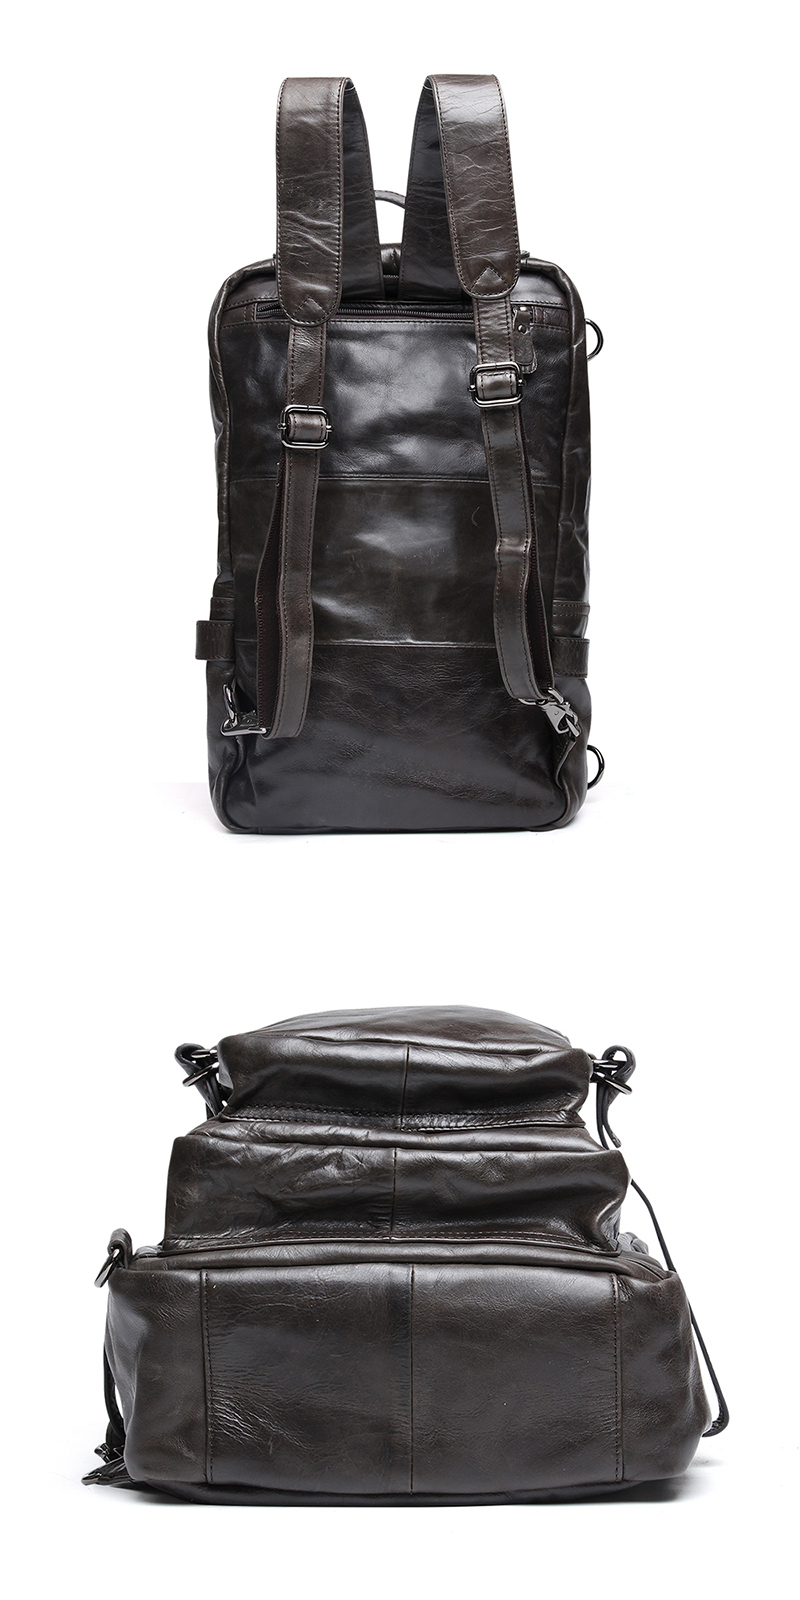 522cbd31cf NBSAMENG High Class Oil Waxed Genuine Leather Men Backpack Cowhide Leather  Travel Backpack School Backpack Mountaineering Bag-in Backpacks from  Luggage ...